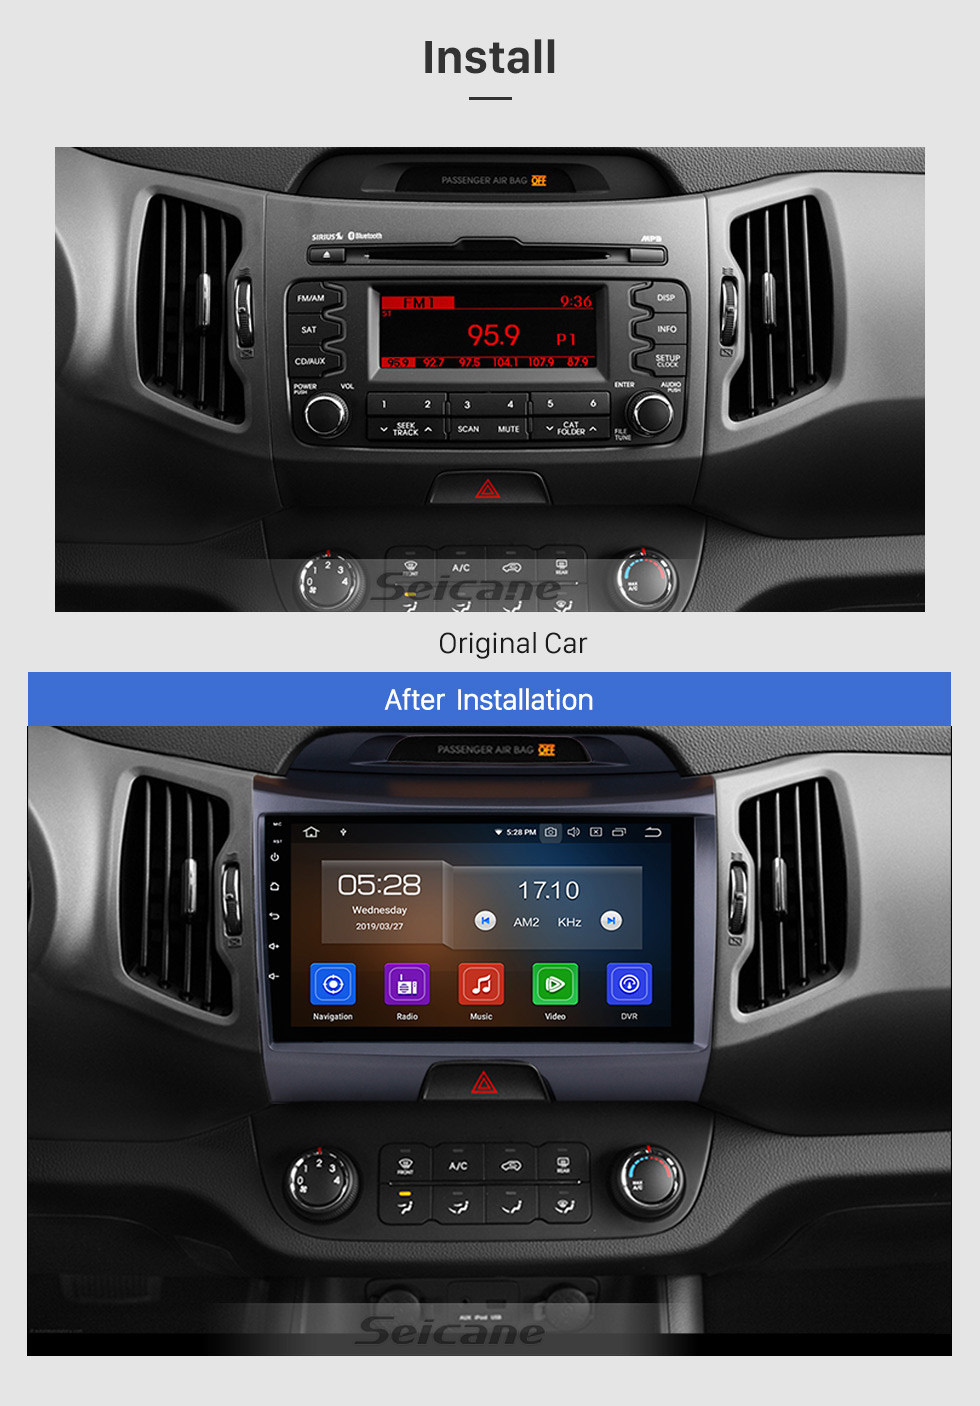 Seicane 9 Inch Android 10.0 Touch Screen radio Bluetooth GPS Navigation system For 2011-2015 KIA Sportage R with TPMS DVR OBD II USB SD 3G WiFi Rear camera Steering Wheel Control HD 1080P Video AUX